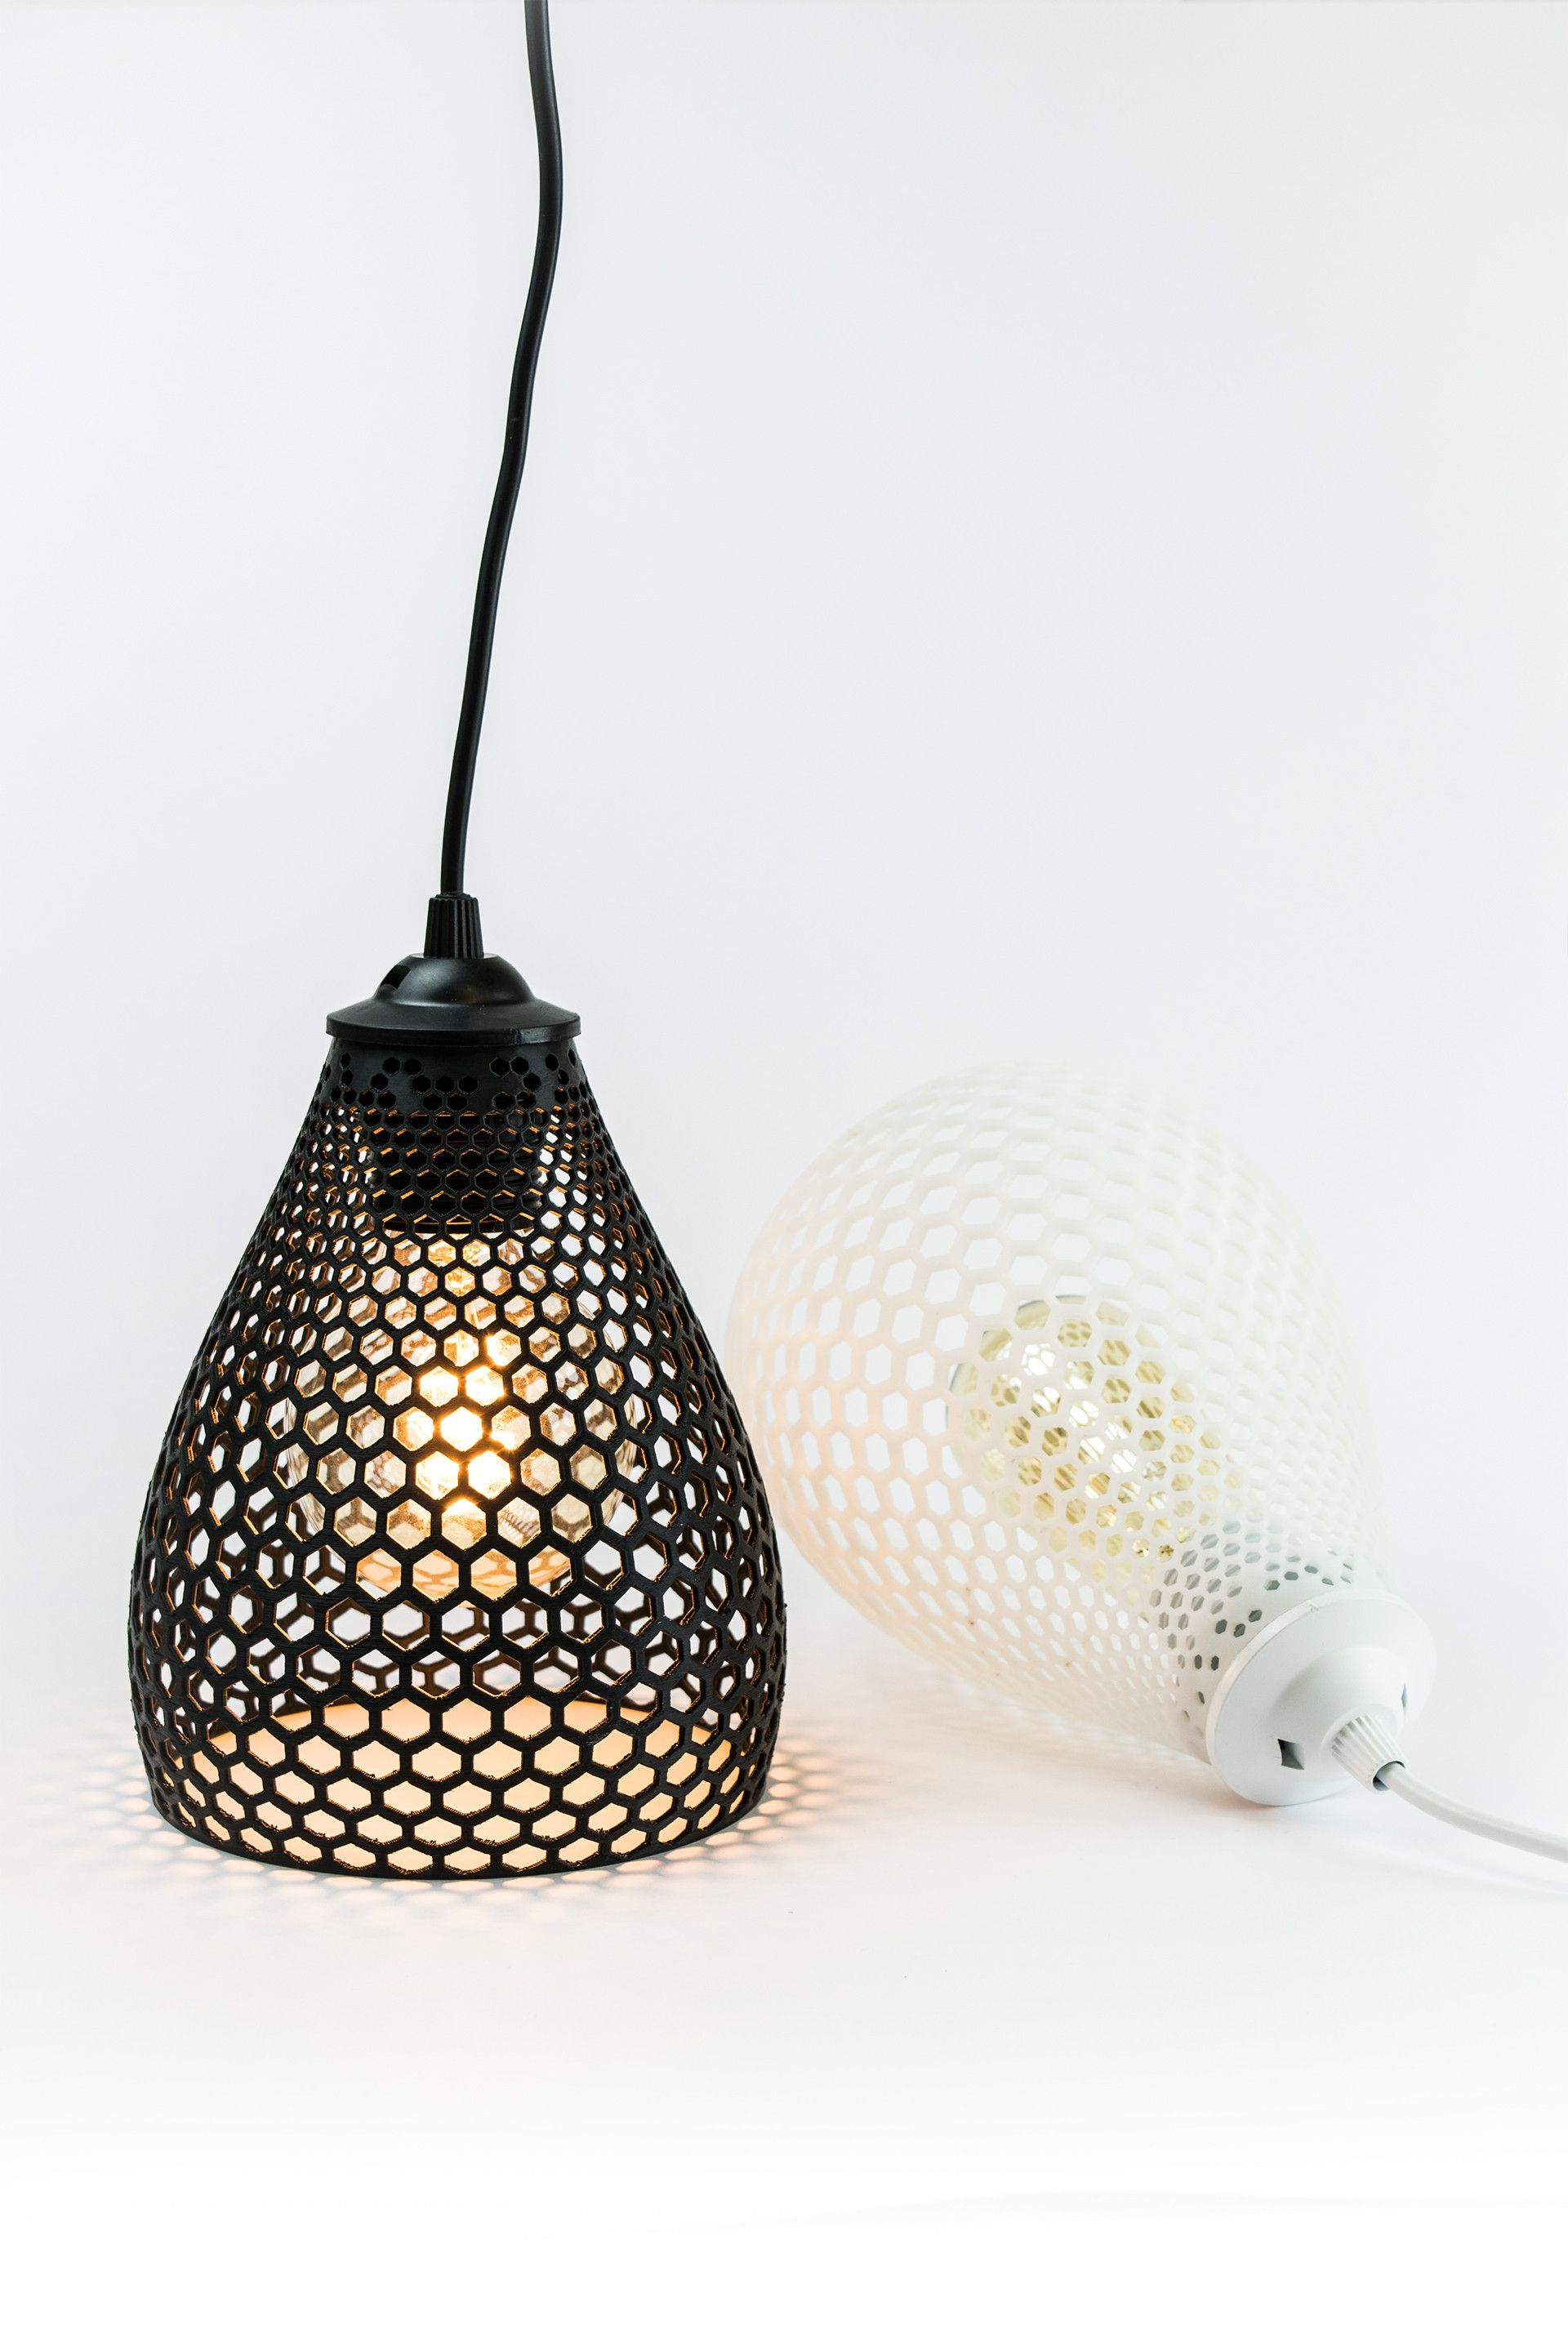 Lampion 3d Printed Lampshade By Voood Studio Moco Loco Submissions Lampshade Designs 3dprinting Design Lamp